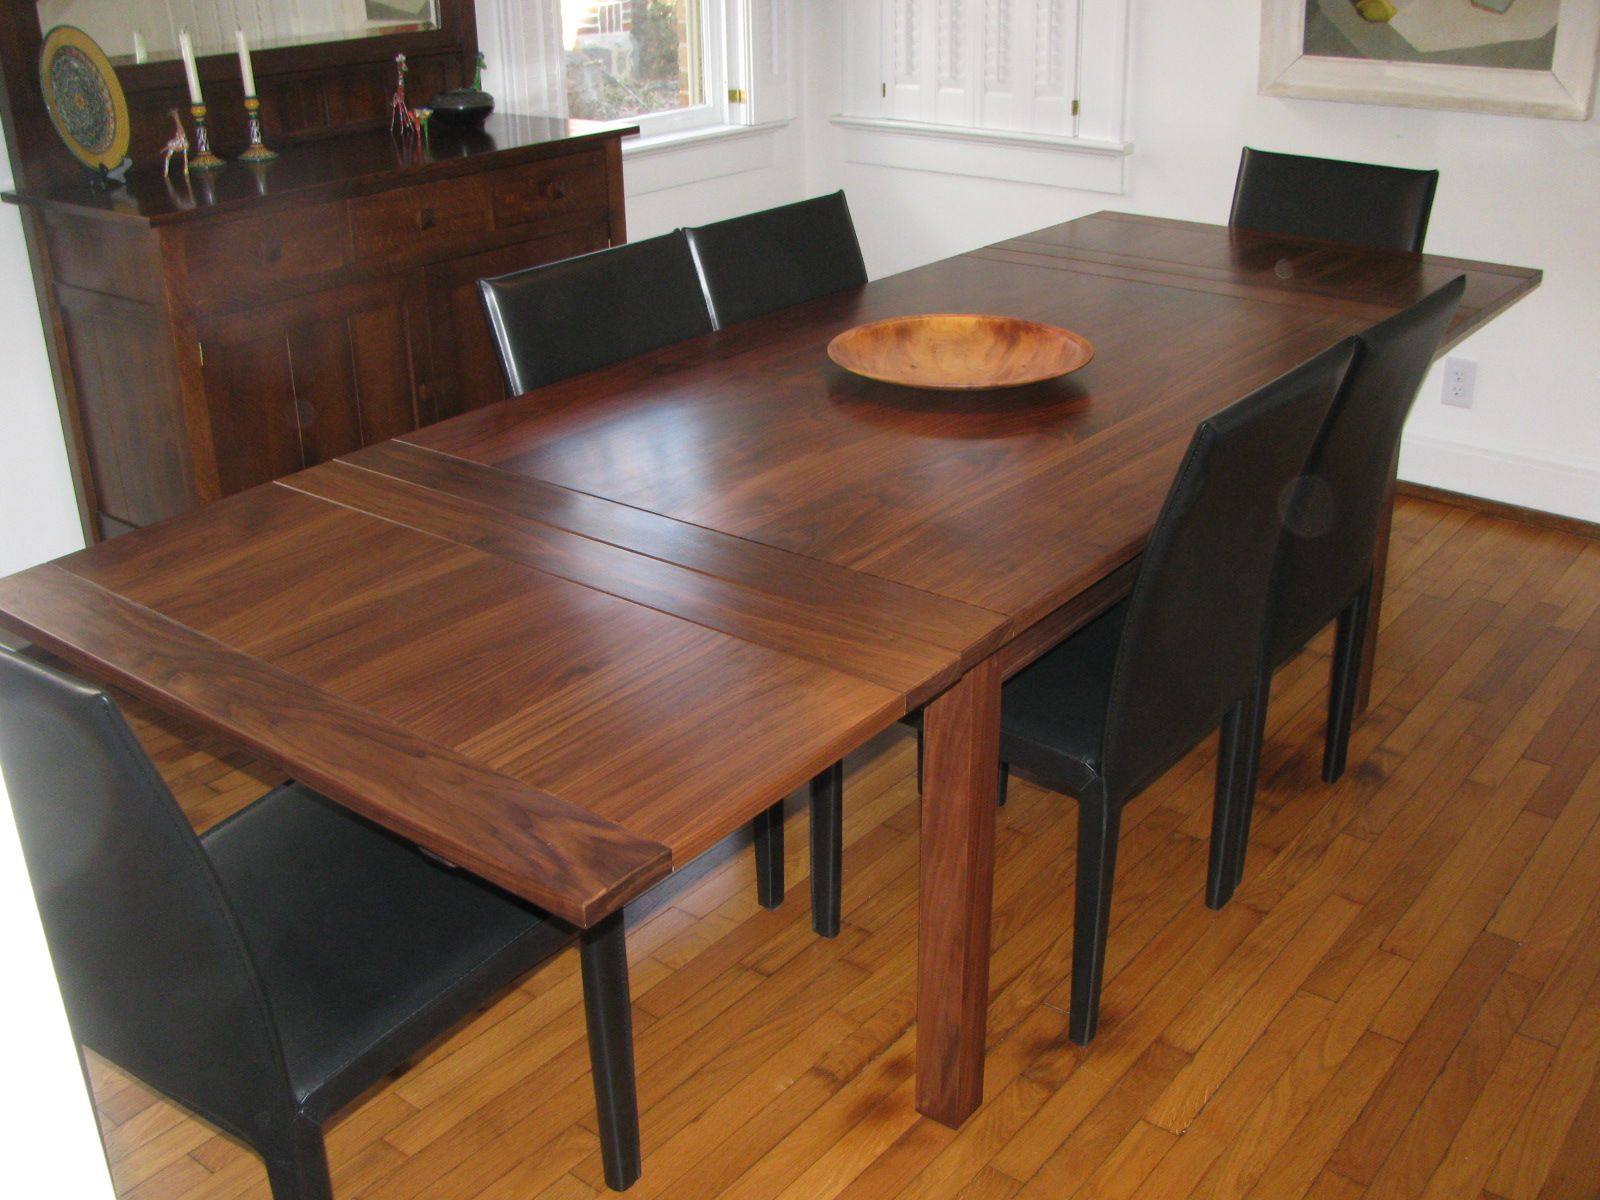 Solid Walnut Dining Table With Self Storing Leaves Shown In Open